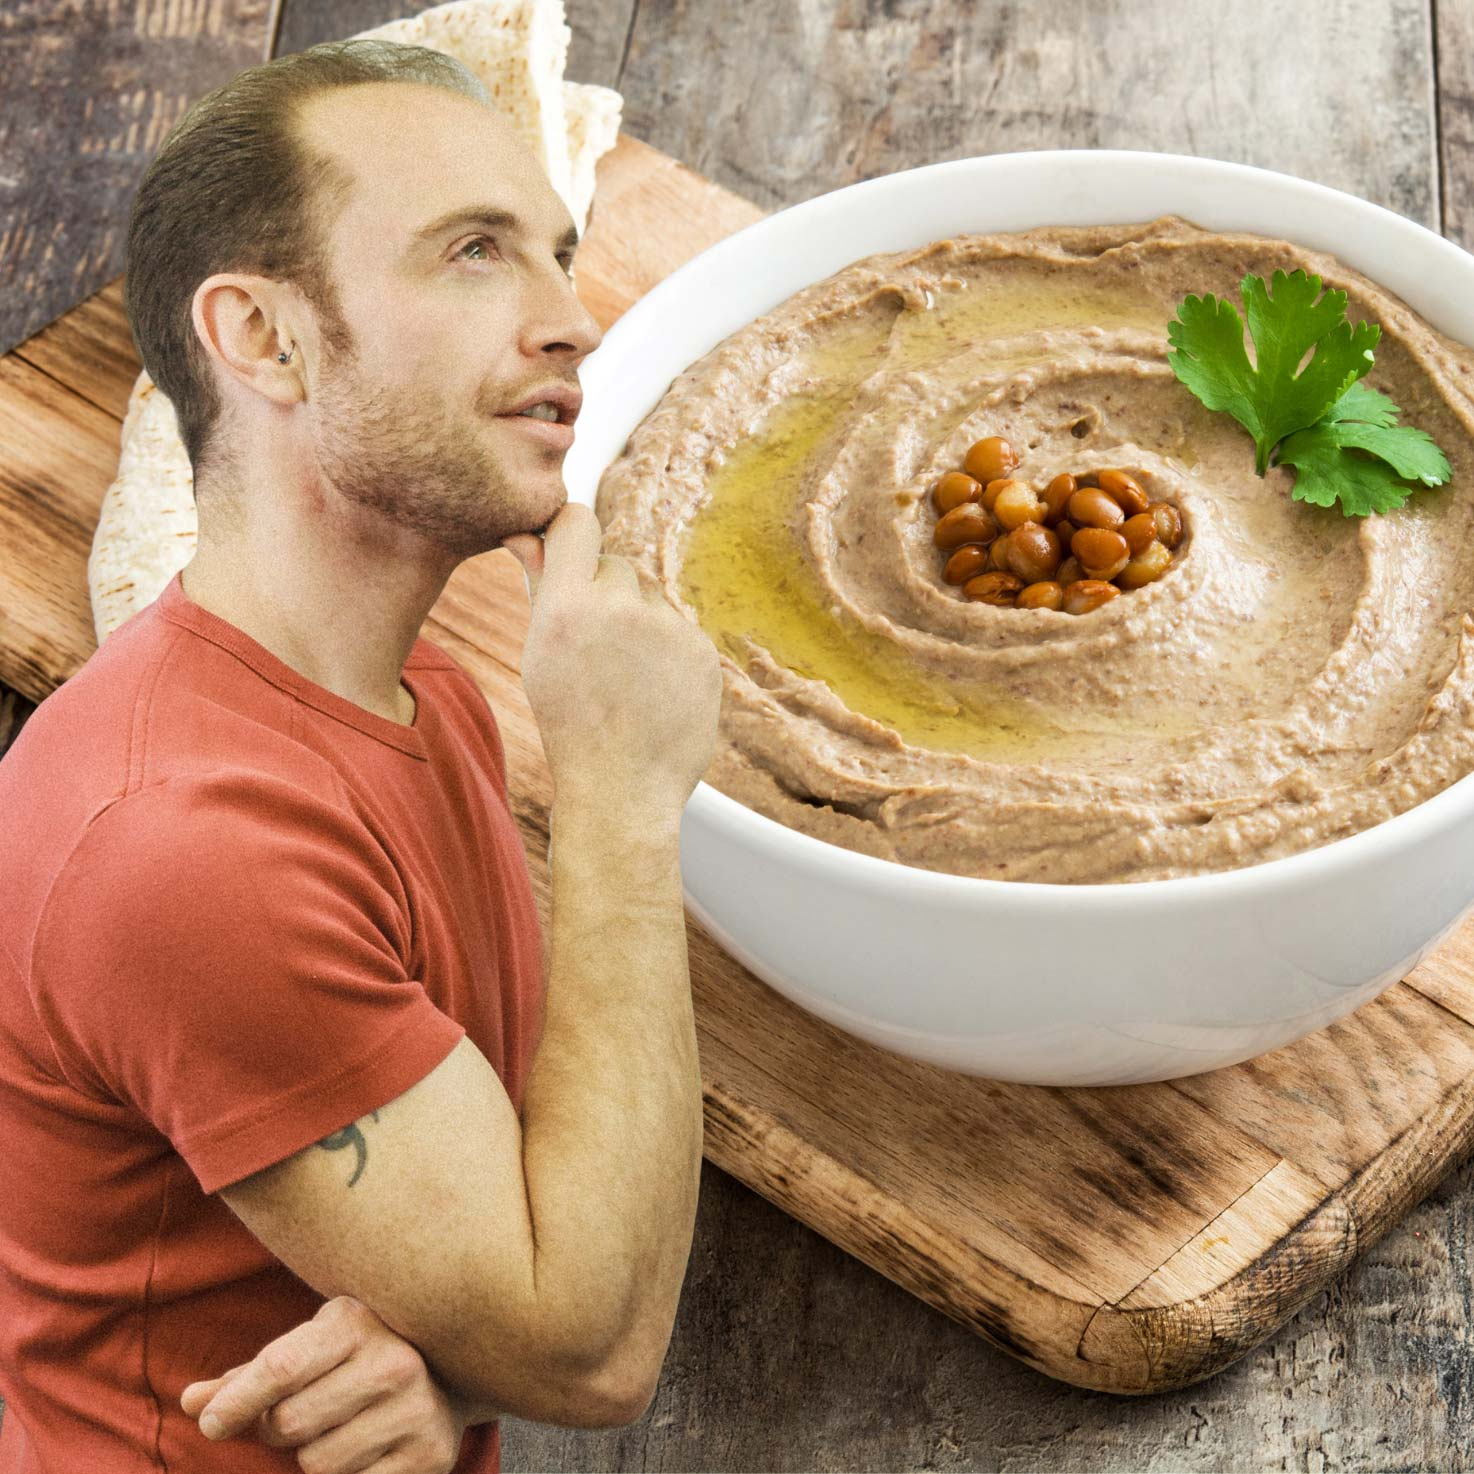 Is Hummus Good For Weight Loss? | Hurry The Food Up